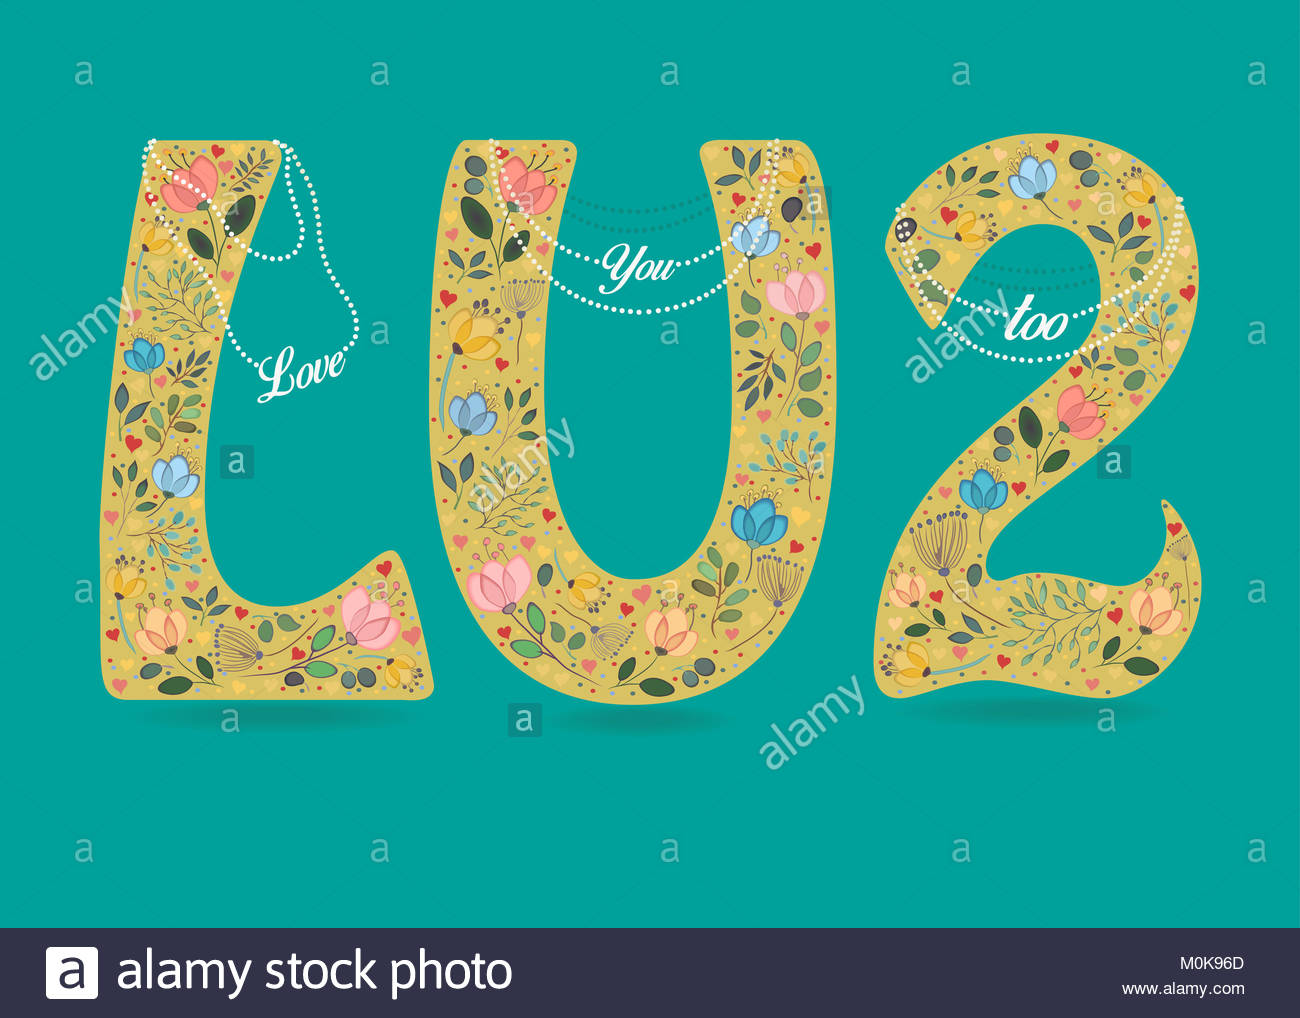 Small number 2 symbol image collections symbol and sign ideas love you too yellow symbols l u and 2 country floral decor yellow symbols l u and 2 buycottarizona